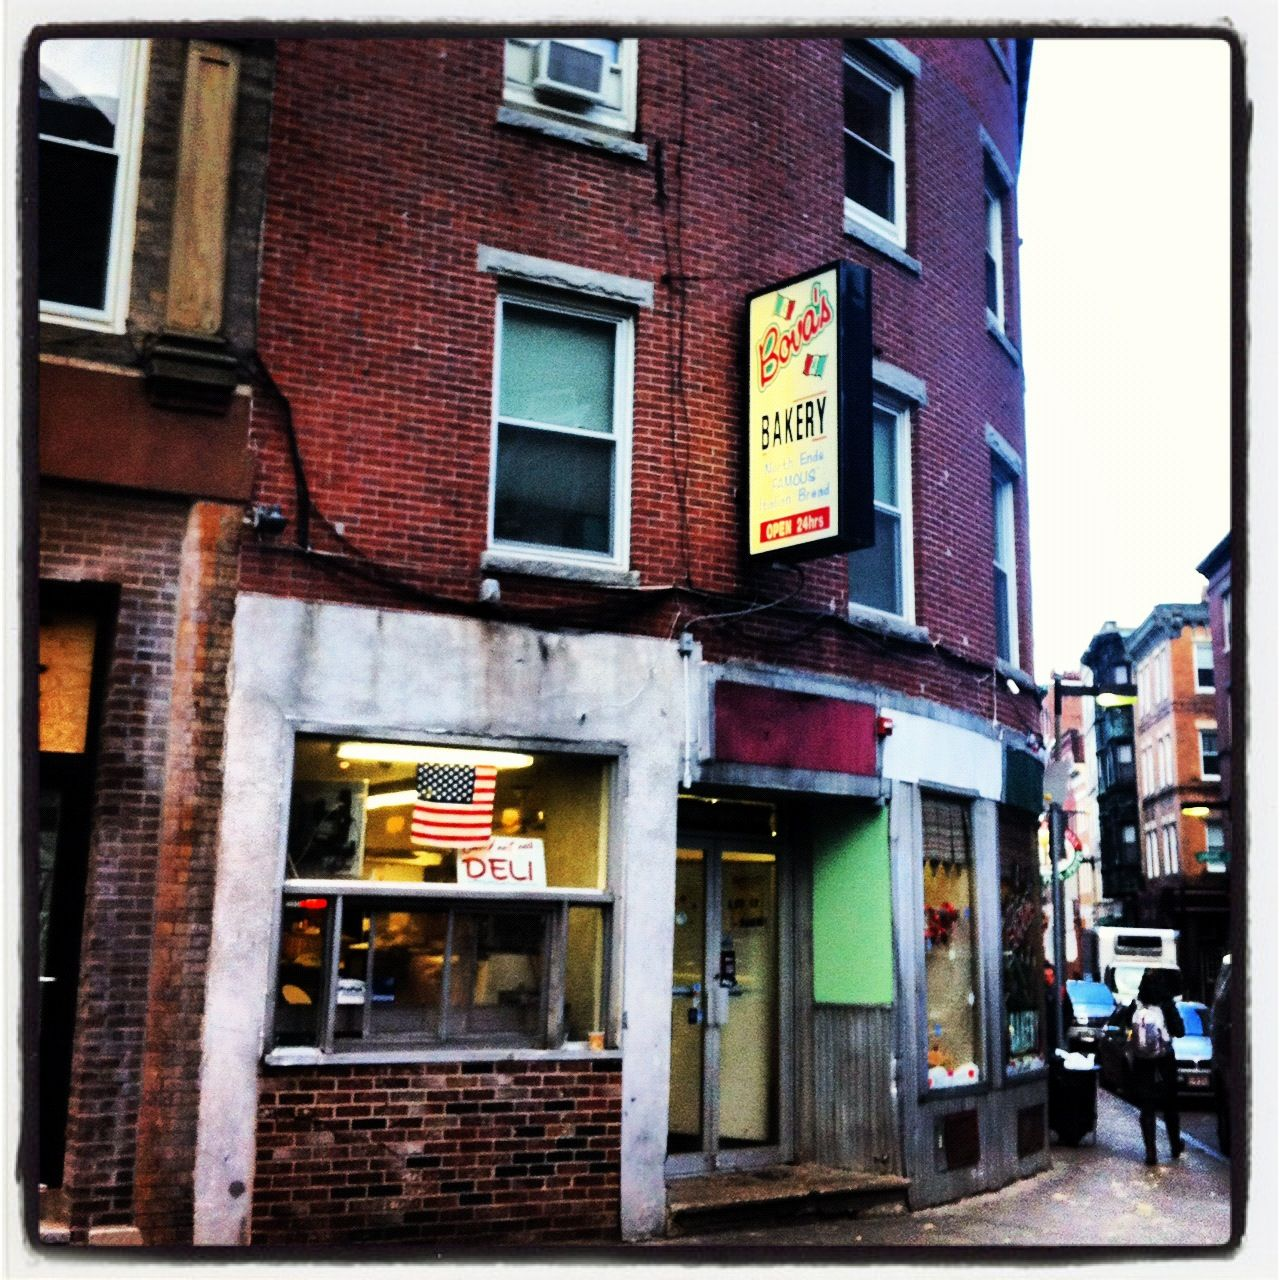 What Famous Movie used this North End Bakery in it? Fever